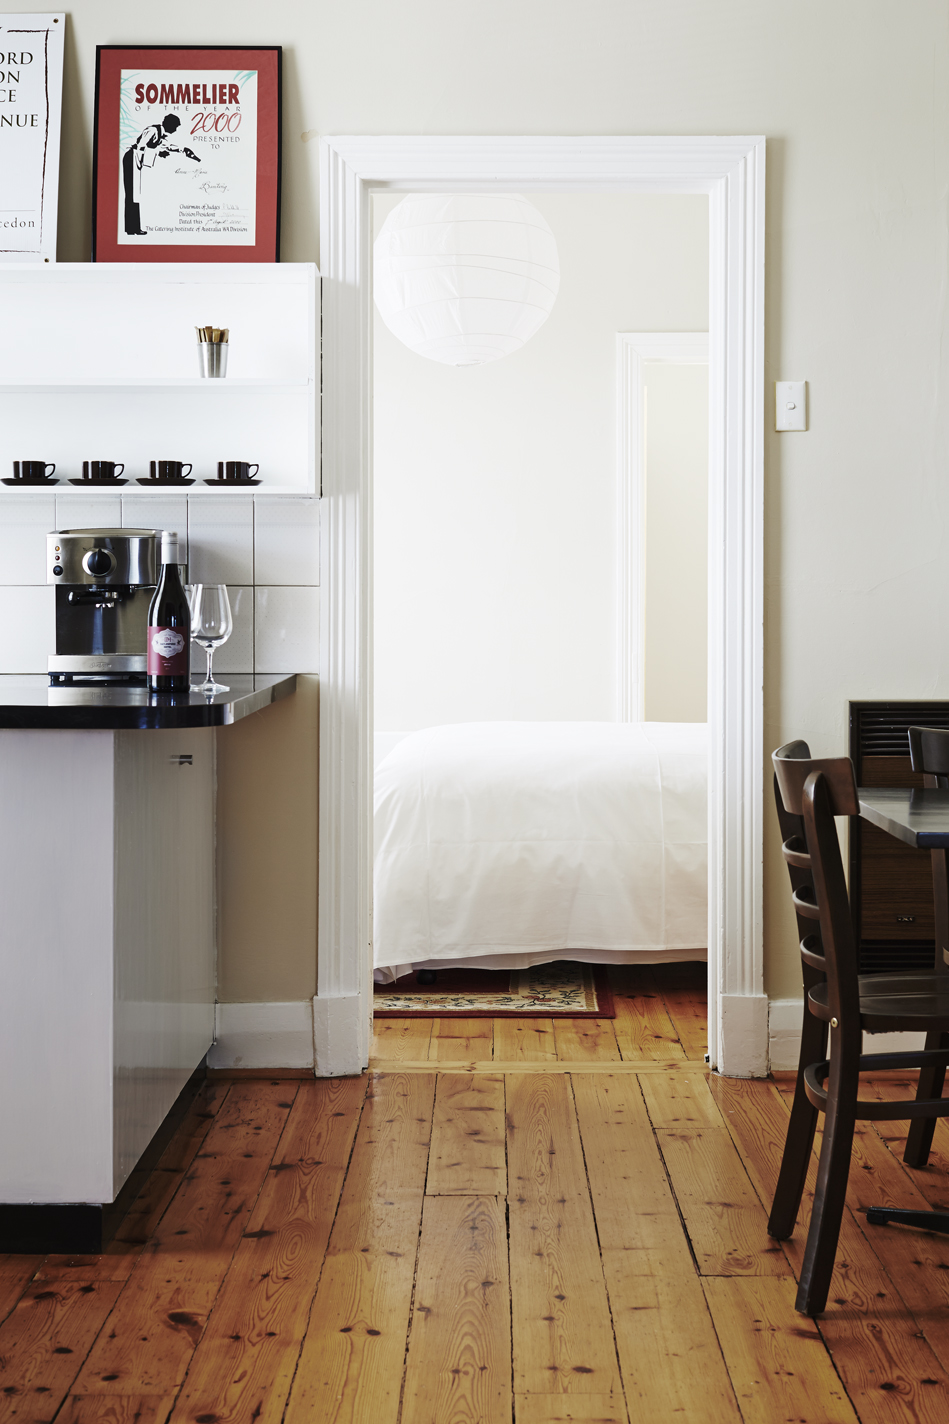 DaylesfordHotel-Apartment-Kitchenette.jpg